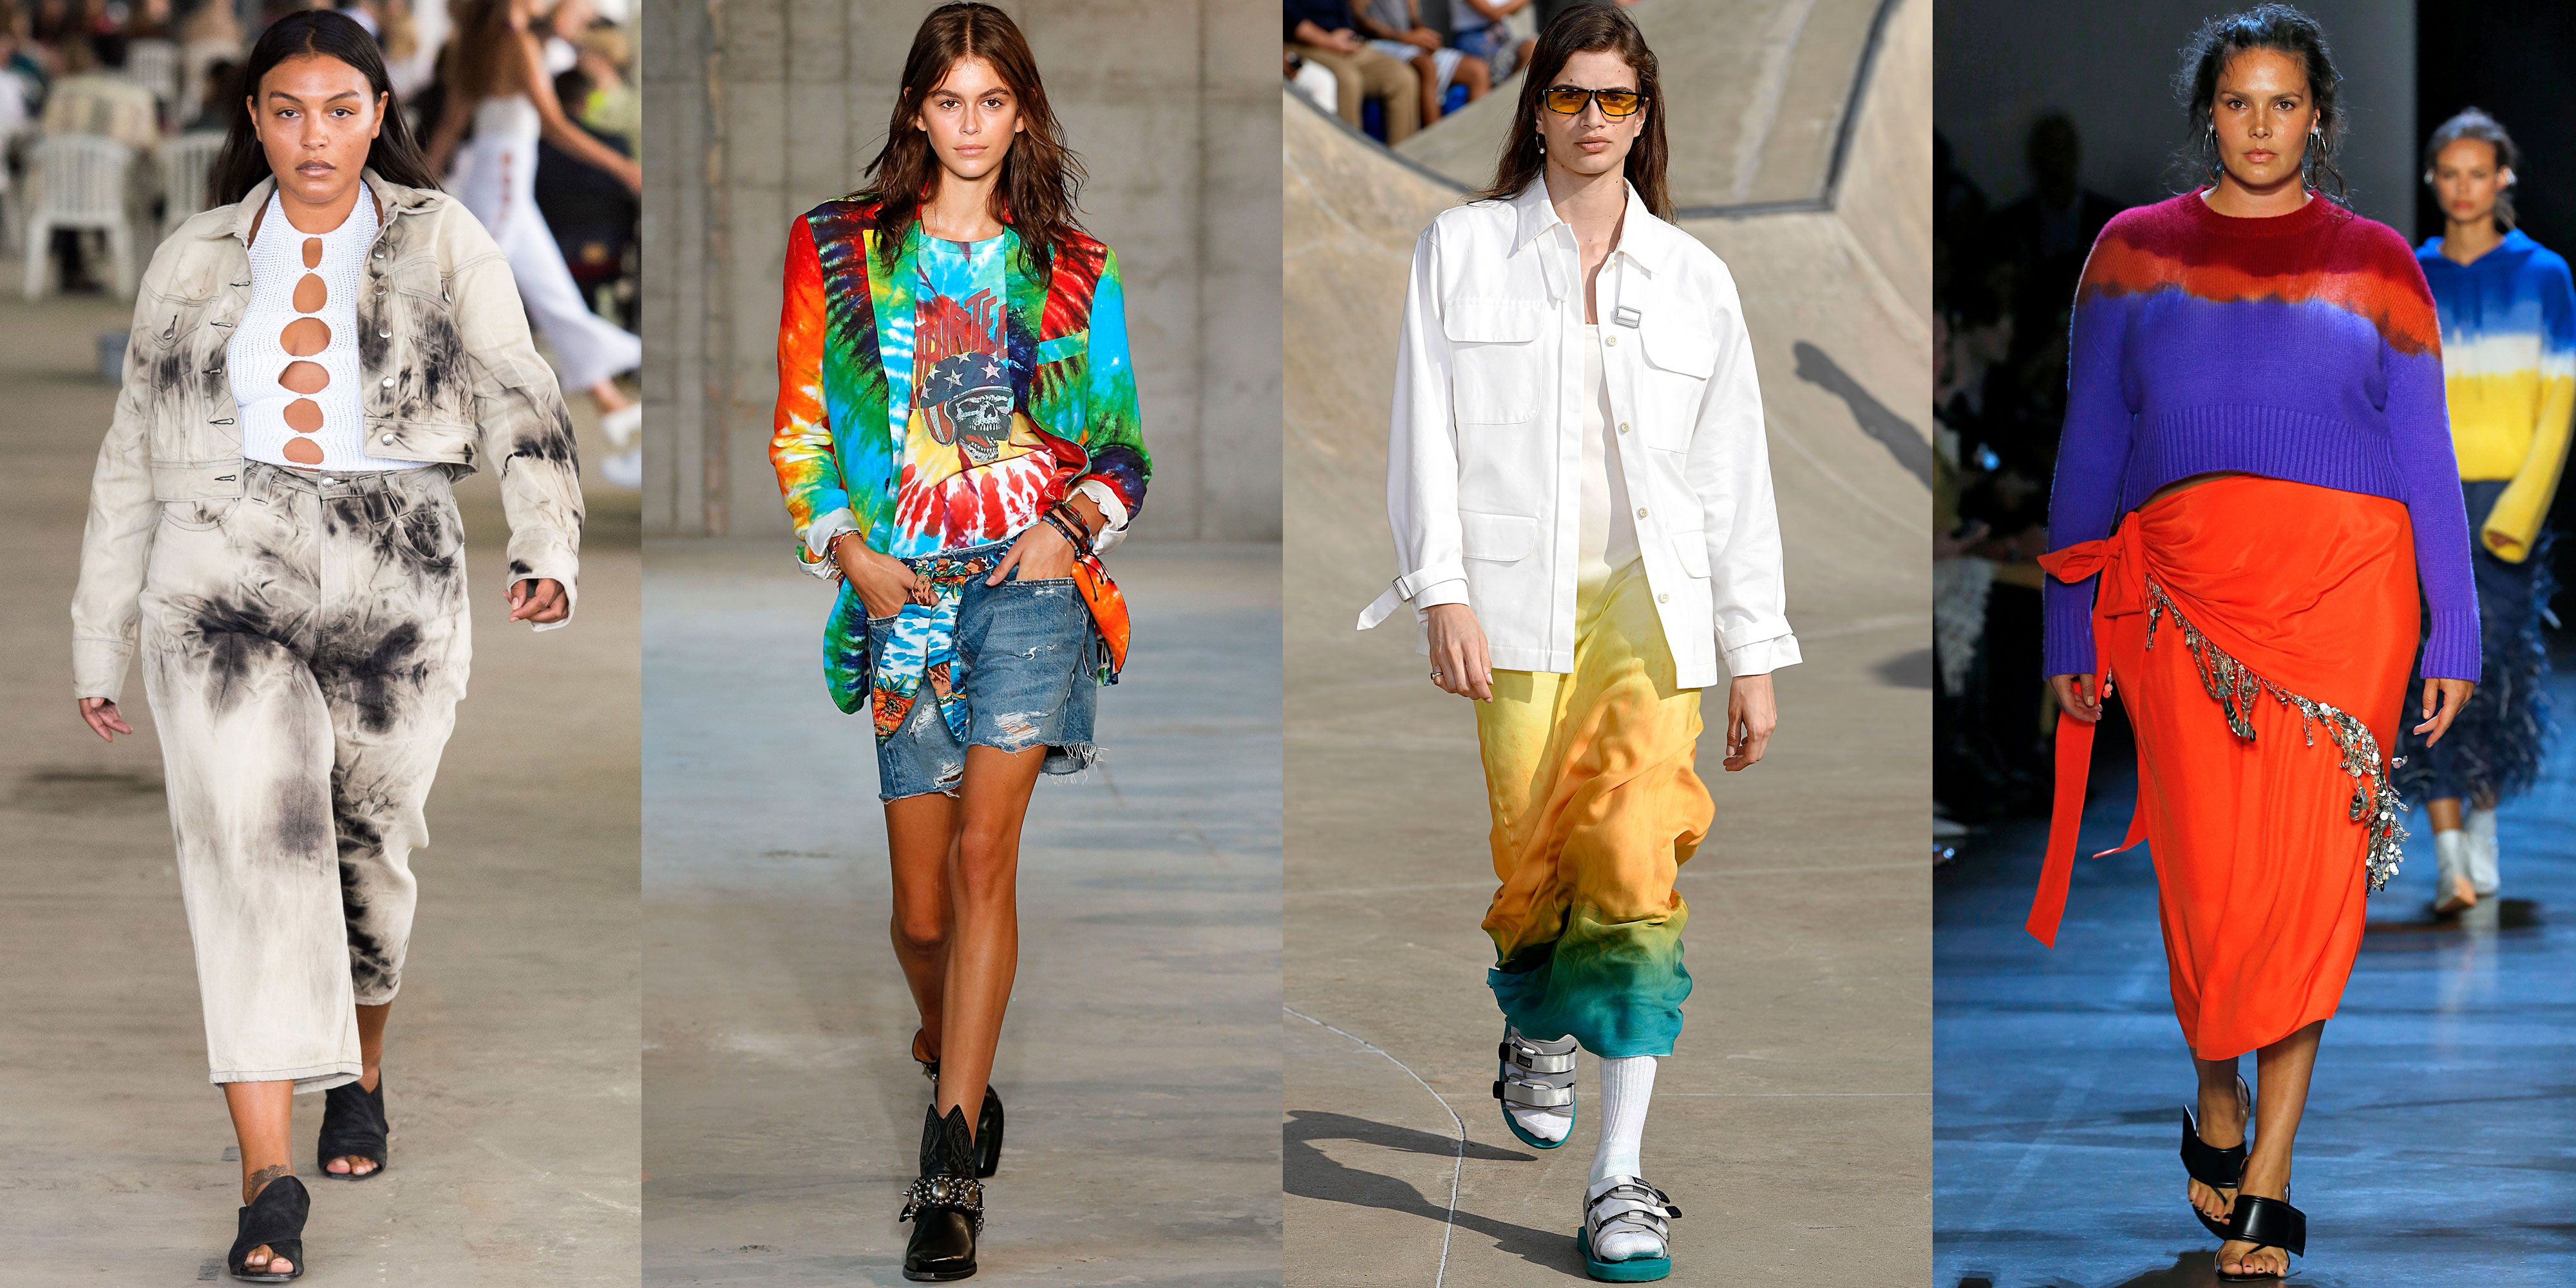 Tie Dye As seen at Eckhaus Latta, R13, John Elliott , Prabal Gurung I never thought the tie-dye look was for me, but after the Spring 2019 runway shows, I'm caving and getting myself a funky, colorful top. Designers tapped into their groovy sides, sending tie-dye tops, jackets, and pants down the NYFW runways.